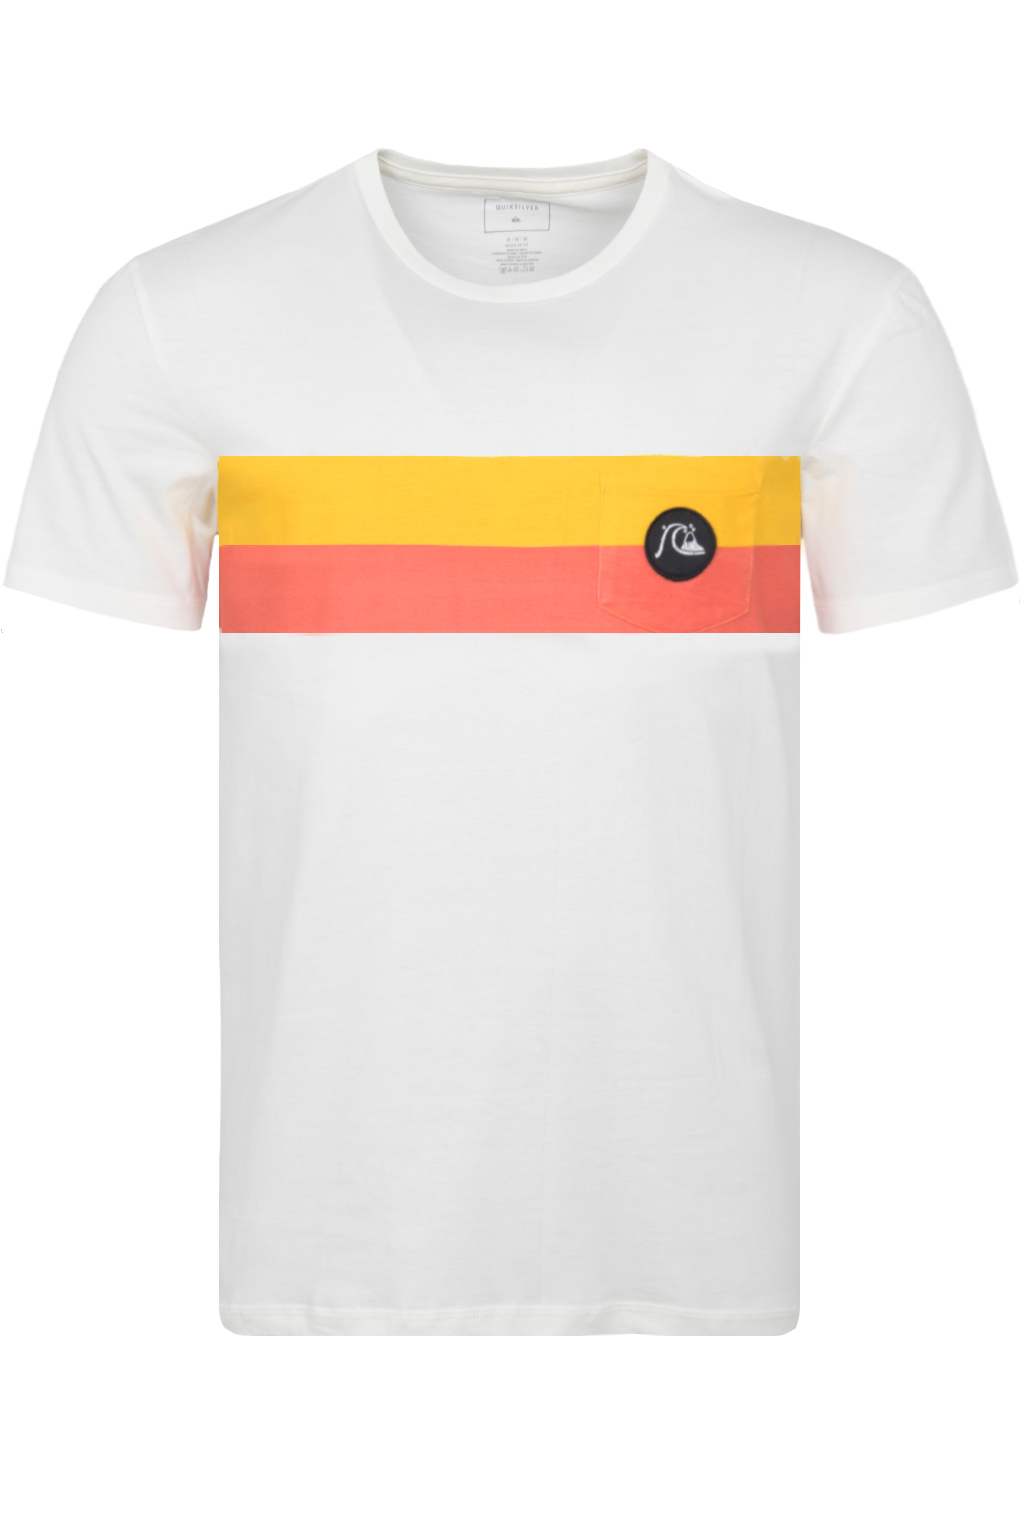 62130507139d QUIKSILVER SEASON STRIPE POCKET ΜΠΛΟΥΖΑ ΑΝΔΡΙΚΗ EQYZT0522-WBY0 ...